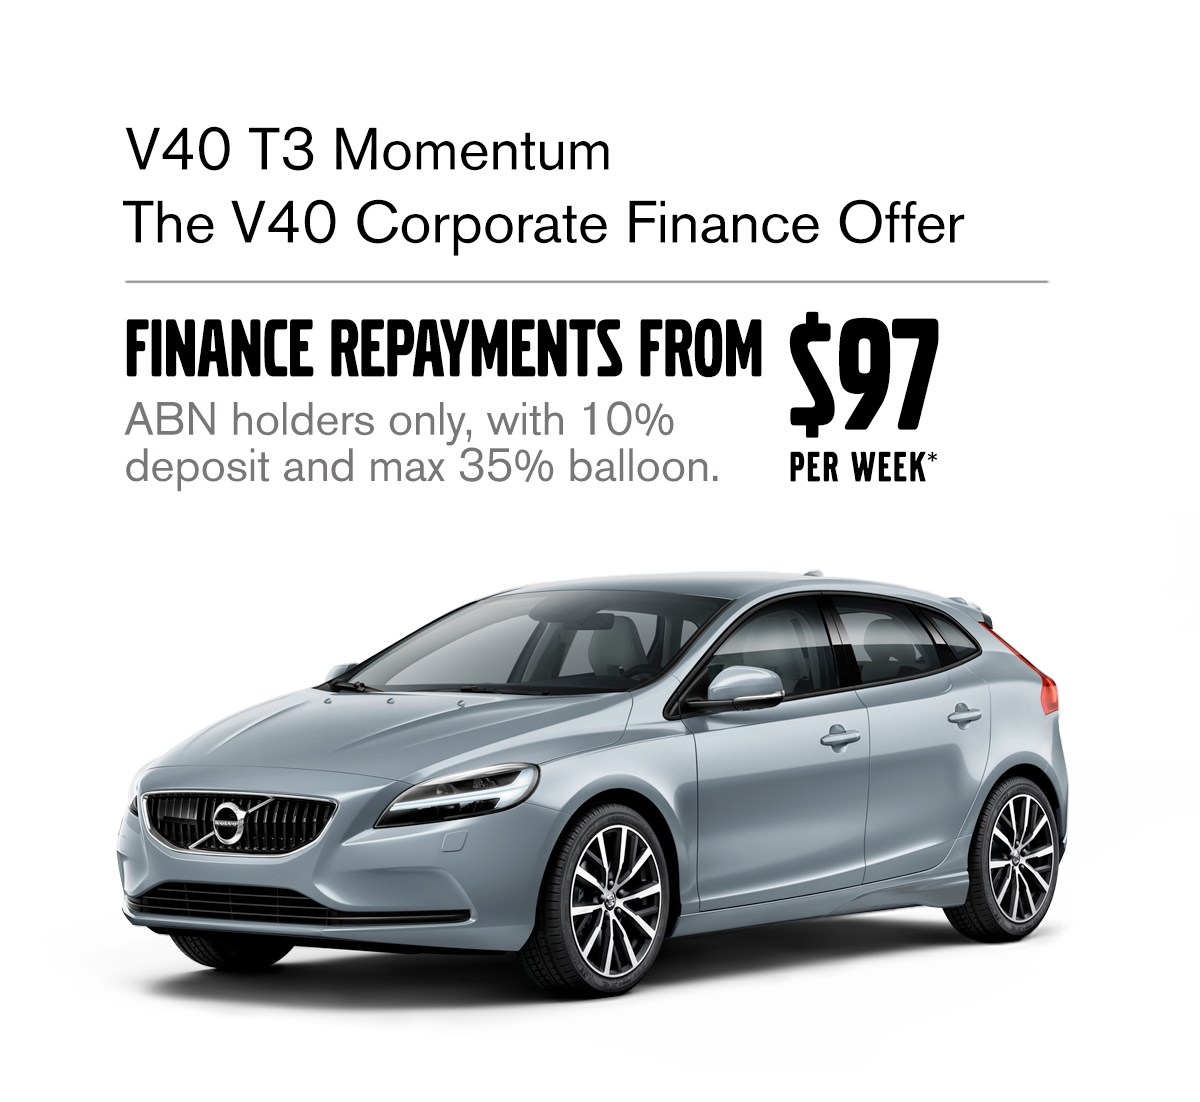 V40 T3 Momentum Corporate Finance Offer